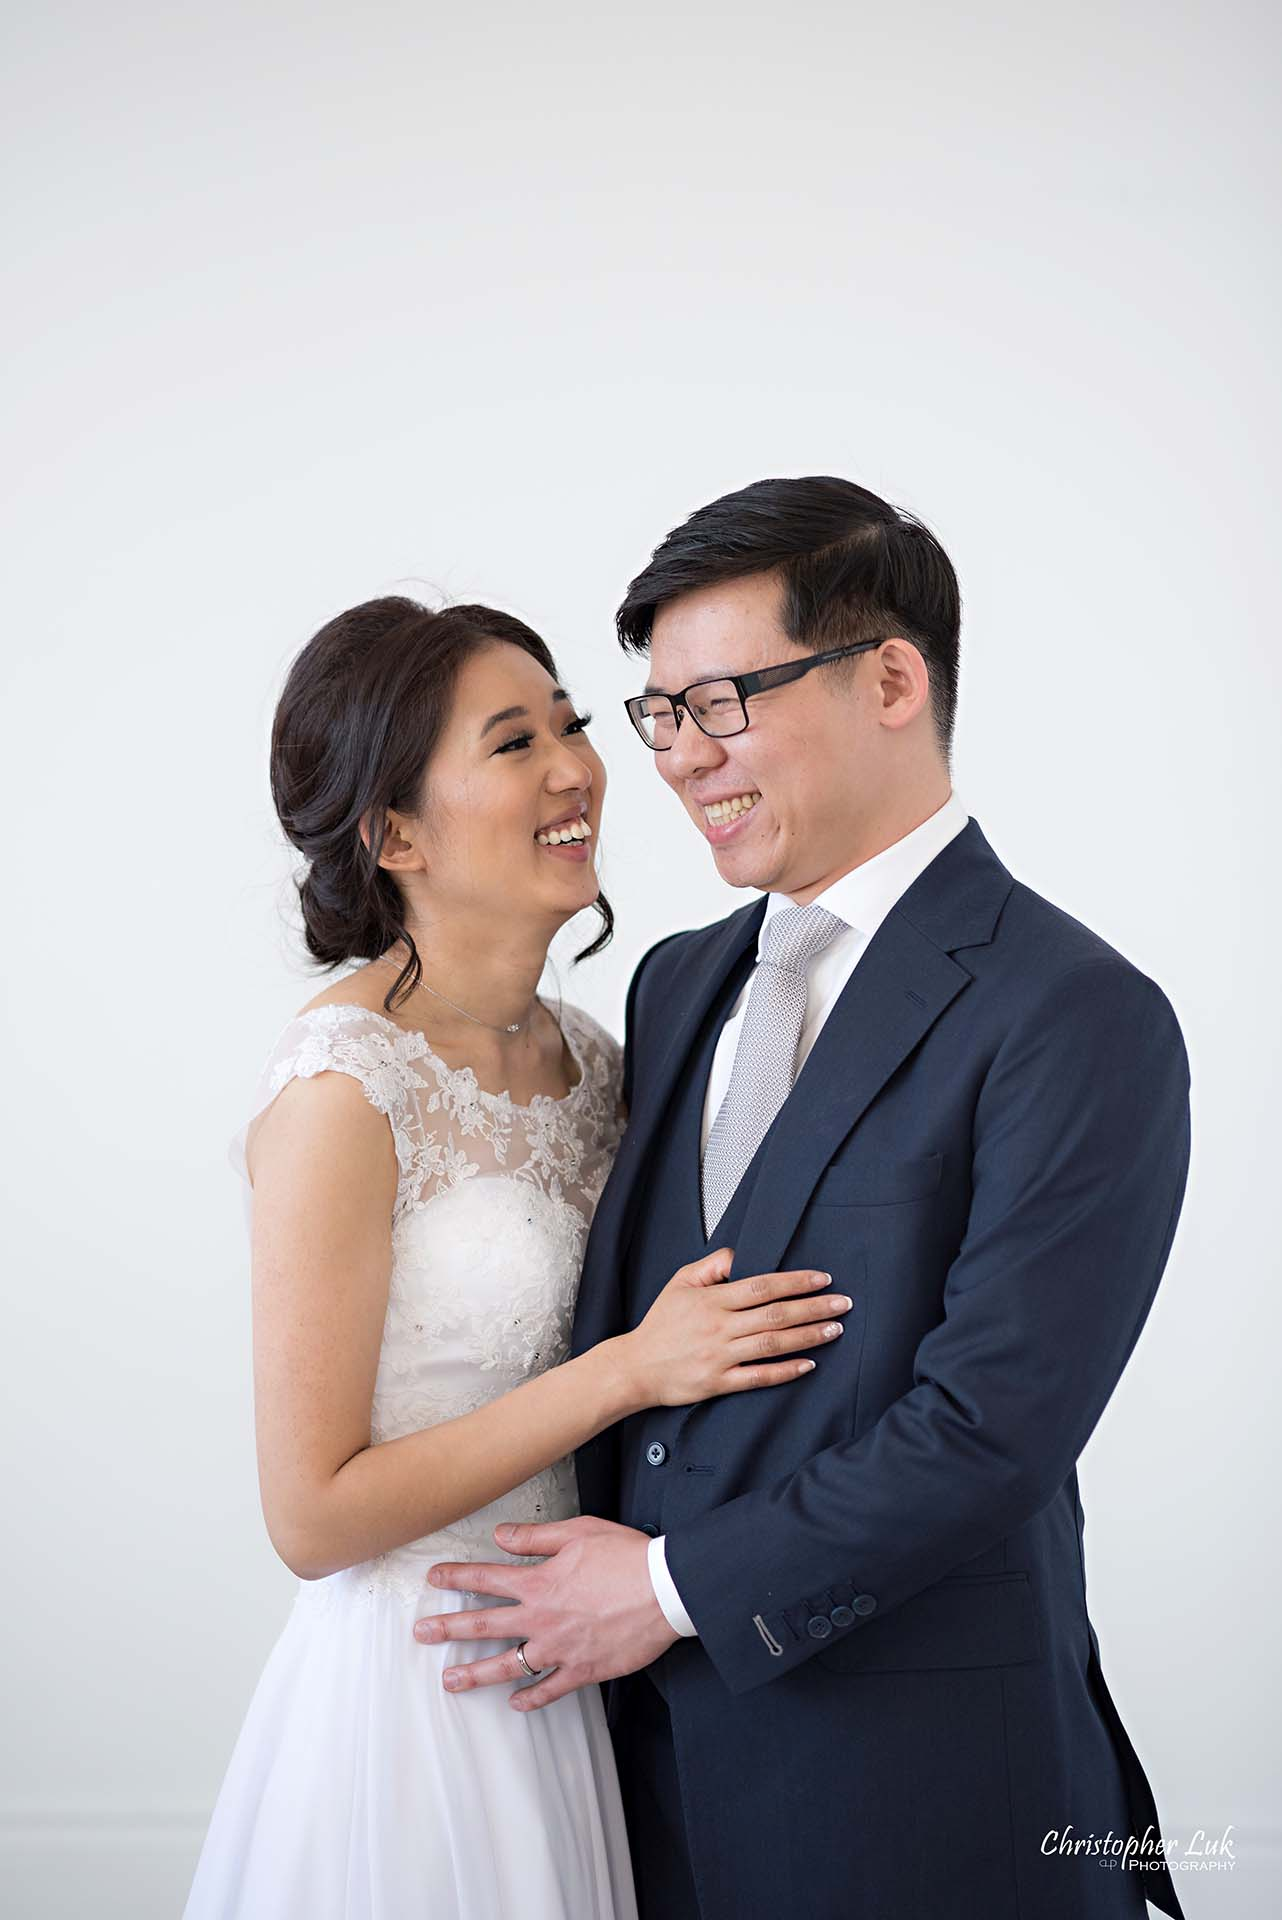 Christopher Luk Toronto Wedding Photographer - Mint Room Studios Bride Groom Natural Candid Photojournalistic Conservatory Ballroom Hug Laugh Looking Each Other Close